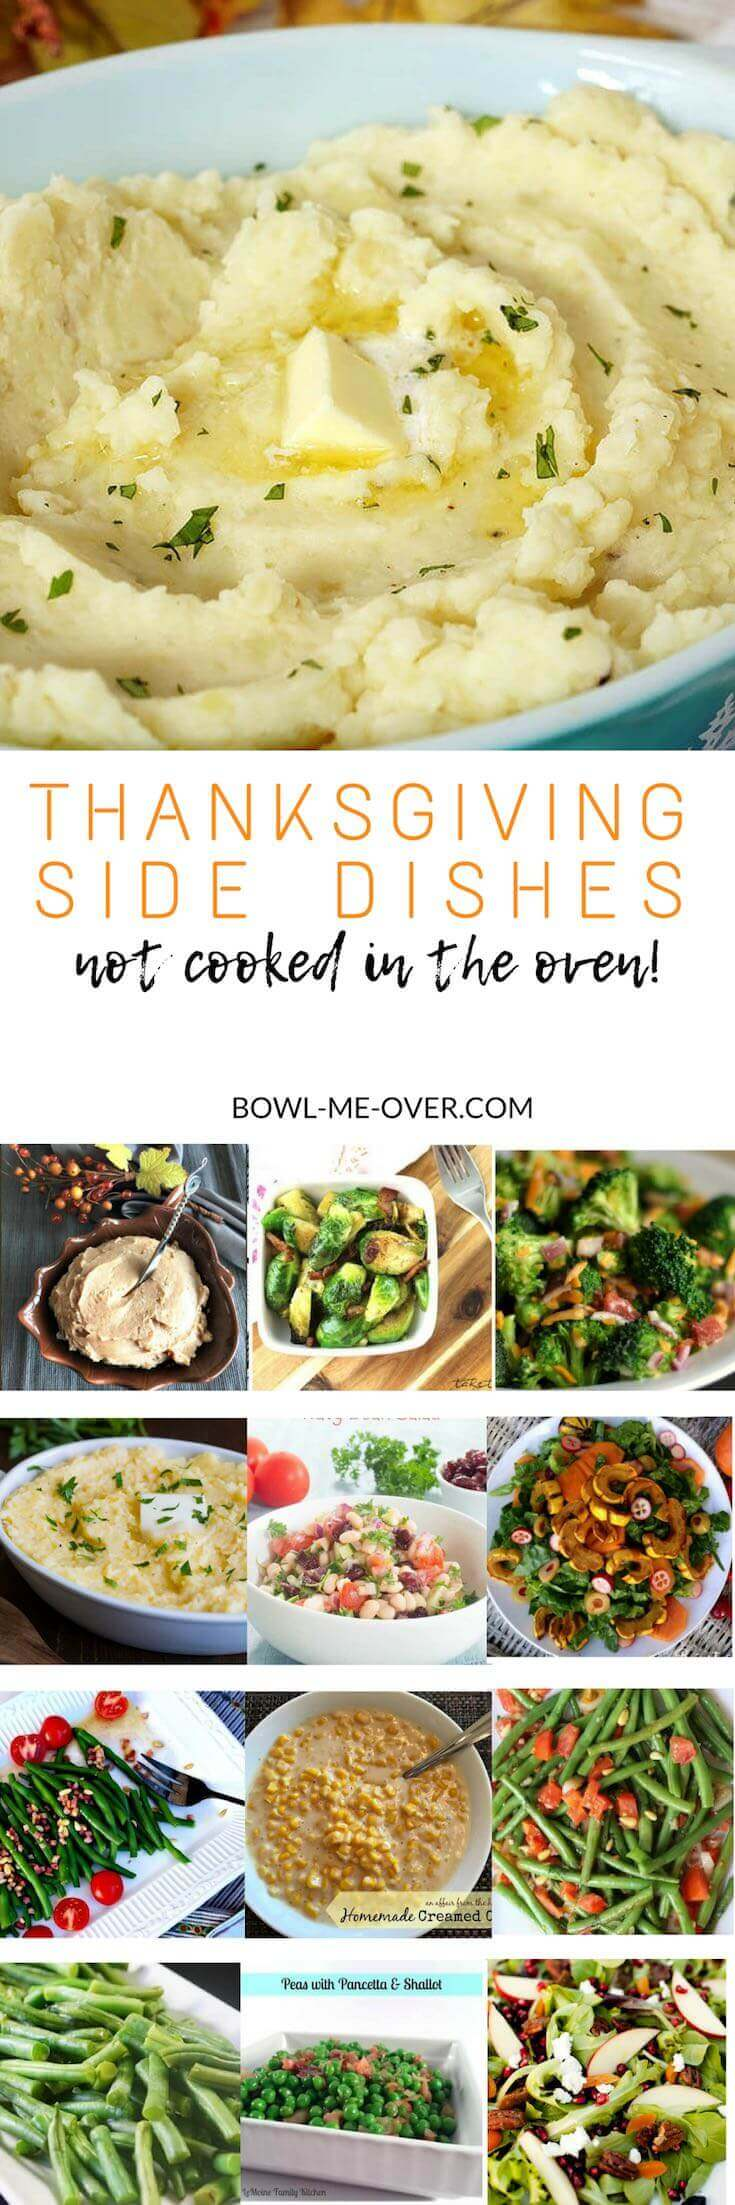 Fabulous Thanksgiving Side Dishes that are NOT made in the oven. 30 recipes shared from the best food bloggers!